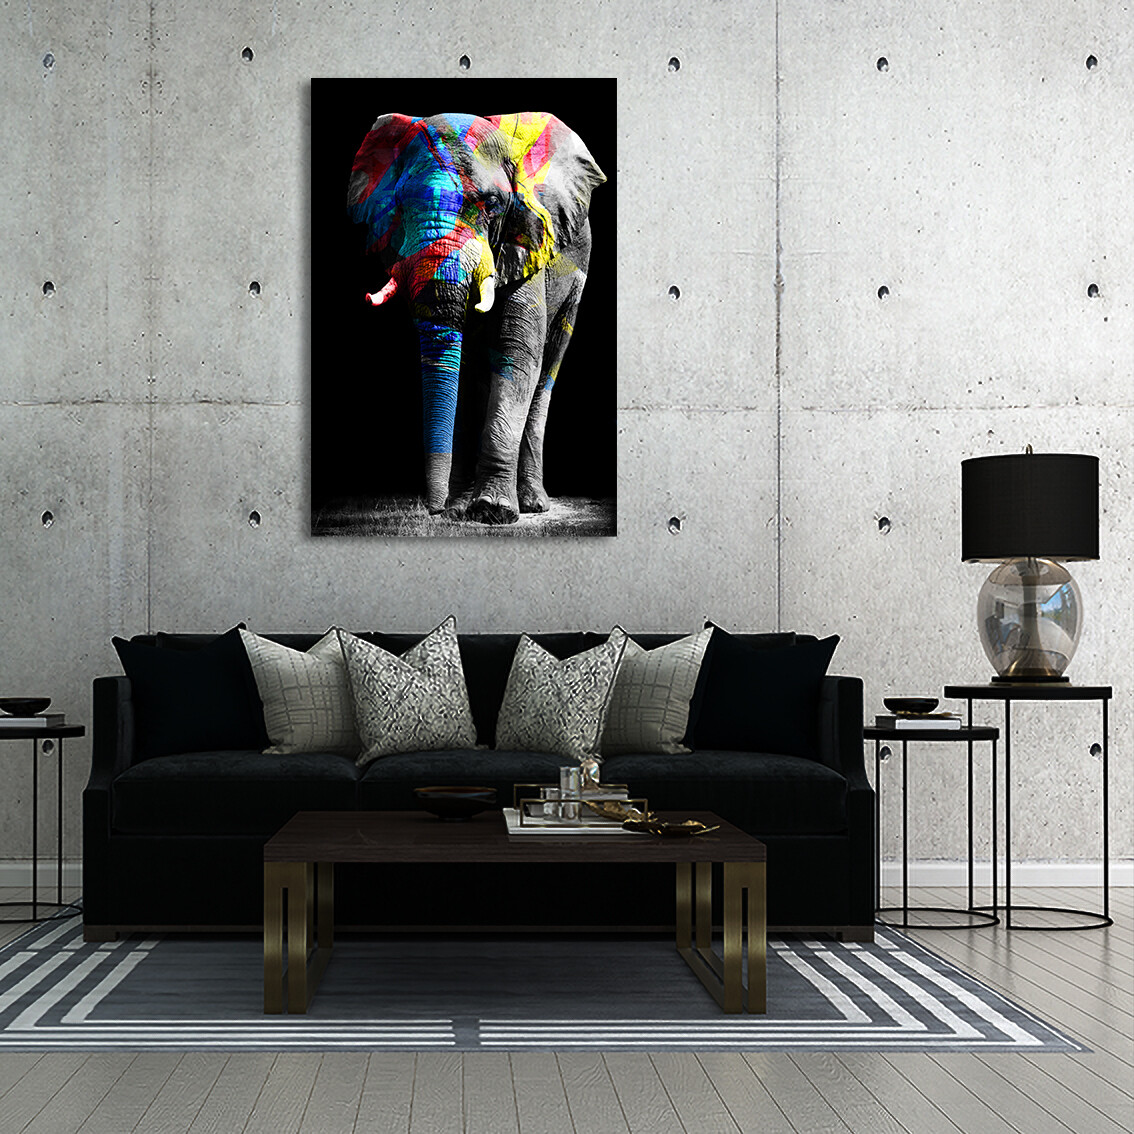 Colourful Elephant  - Modern Luxury Wall art Printed on Acrylic Glass - Frameless and Ready to Hang